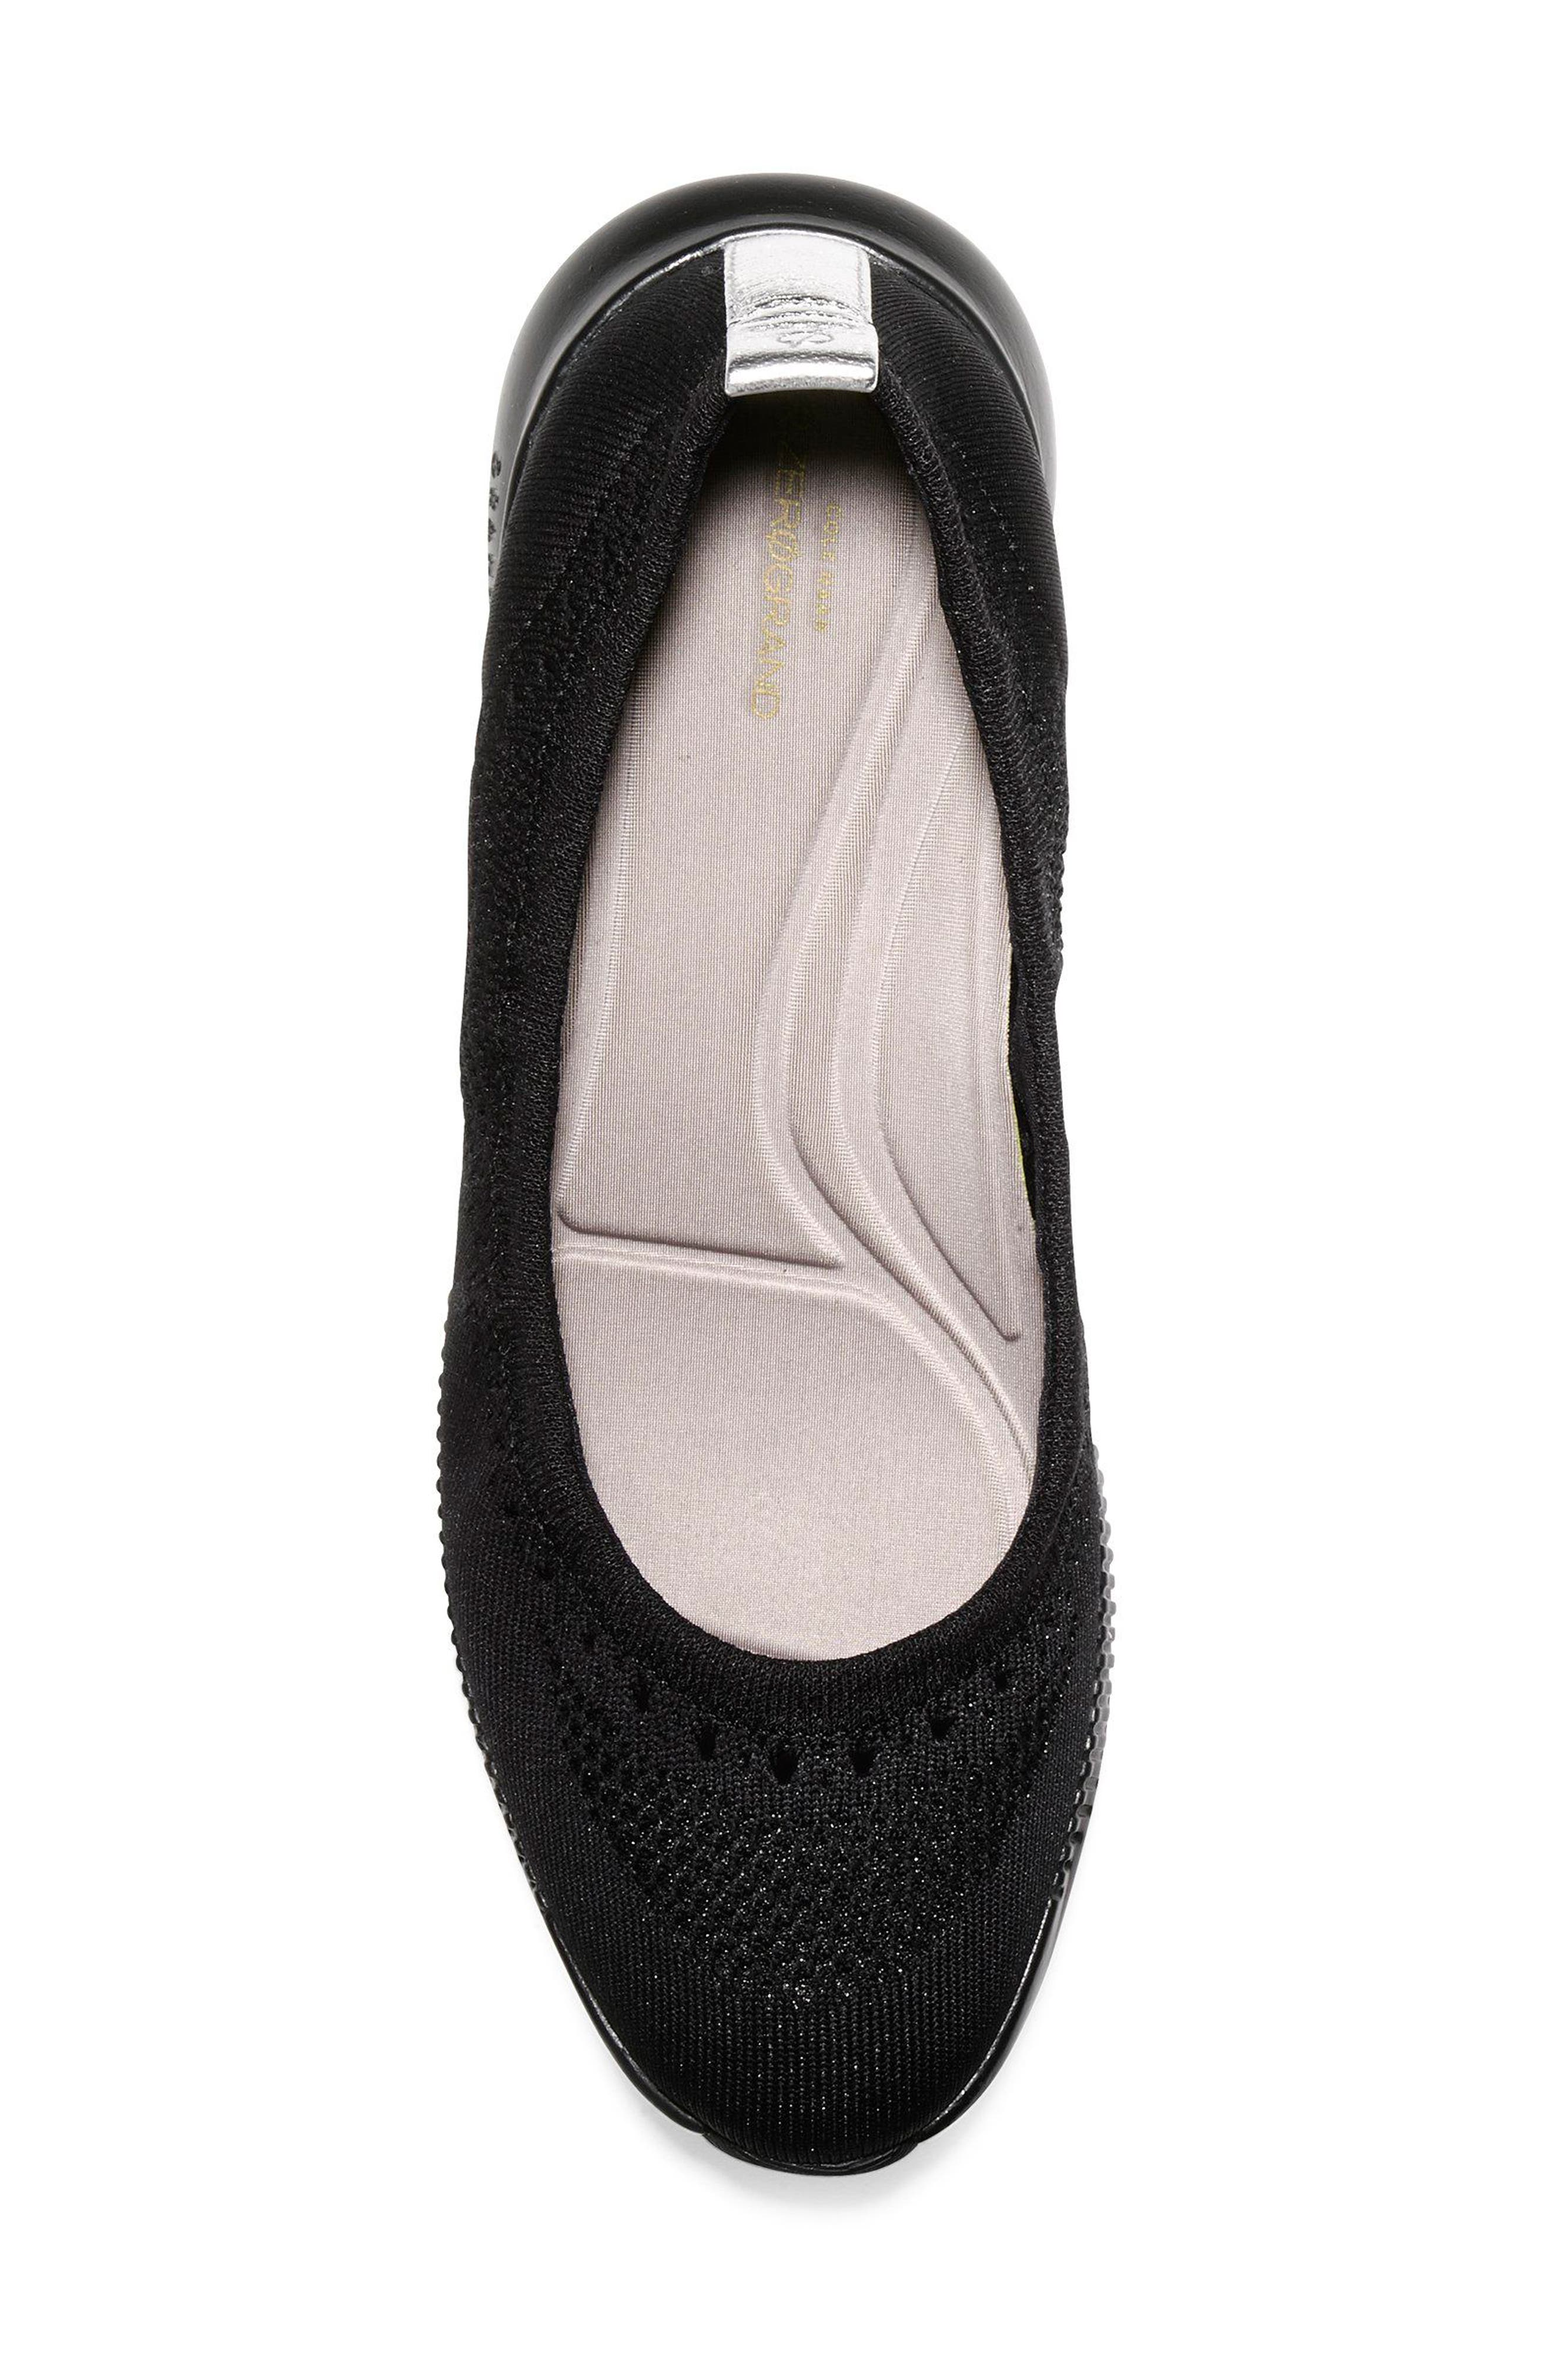 COLE HAAN, 2.ZERØGRAND Stitchlite Ballet Flat, Alternate thumbnail 5, color, BLACK FABRIC